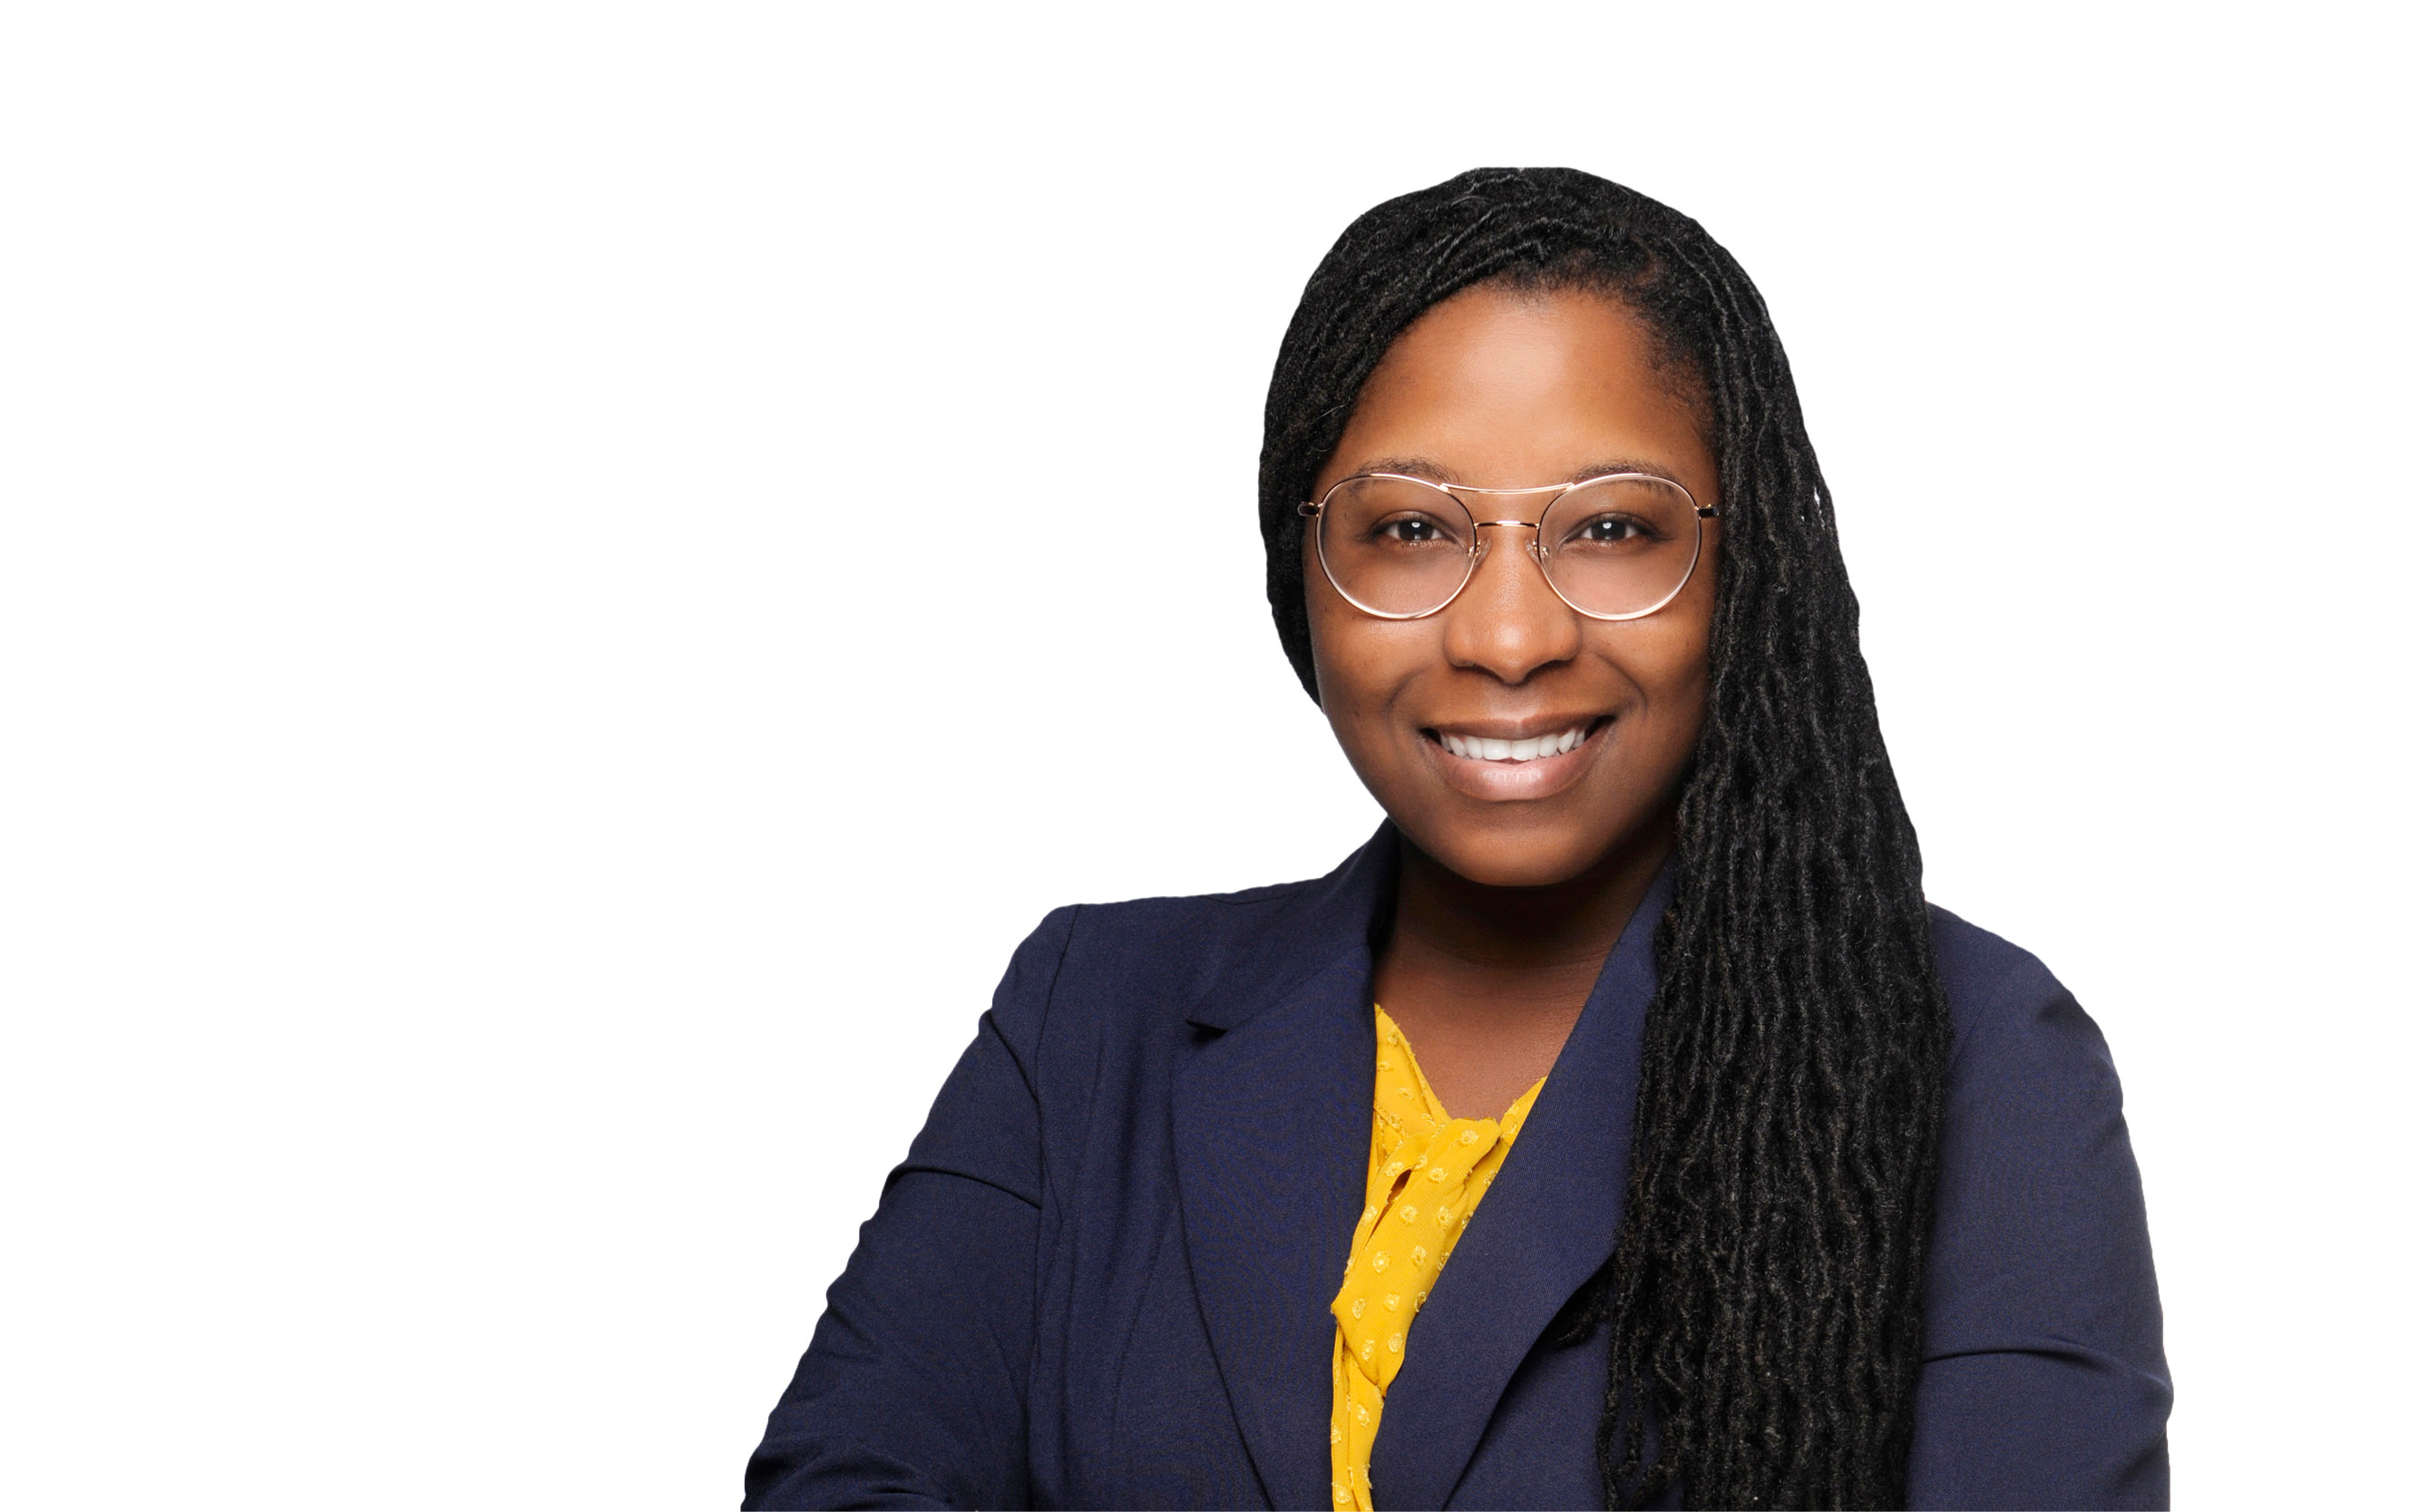 TerryAnn Howell Named to 2019 National Black Lawyers Top 40 Under 40 List and its Executive Committee